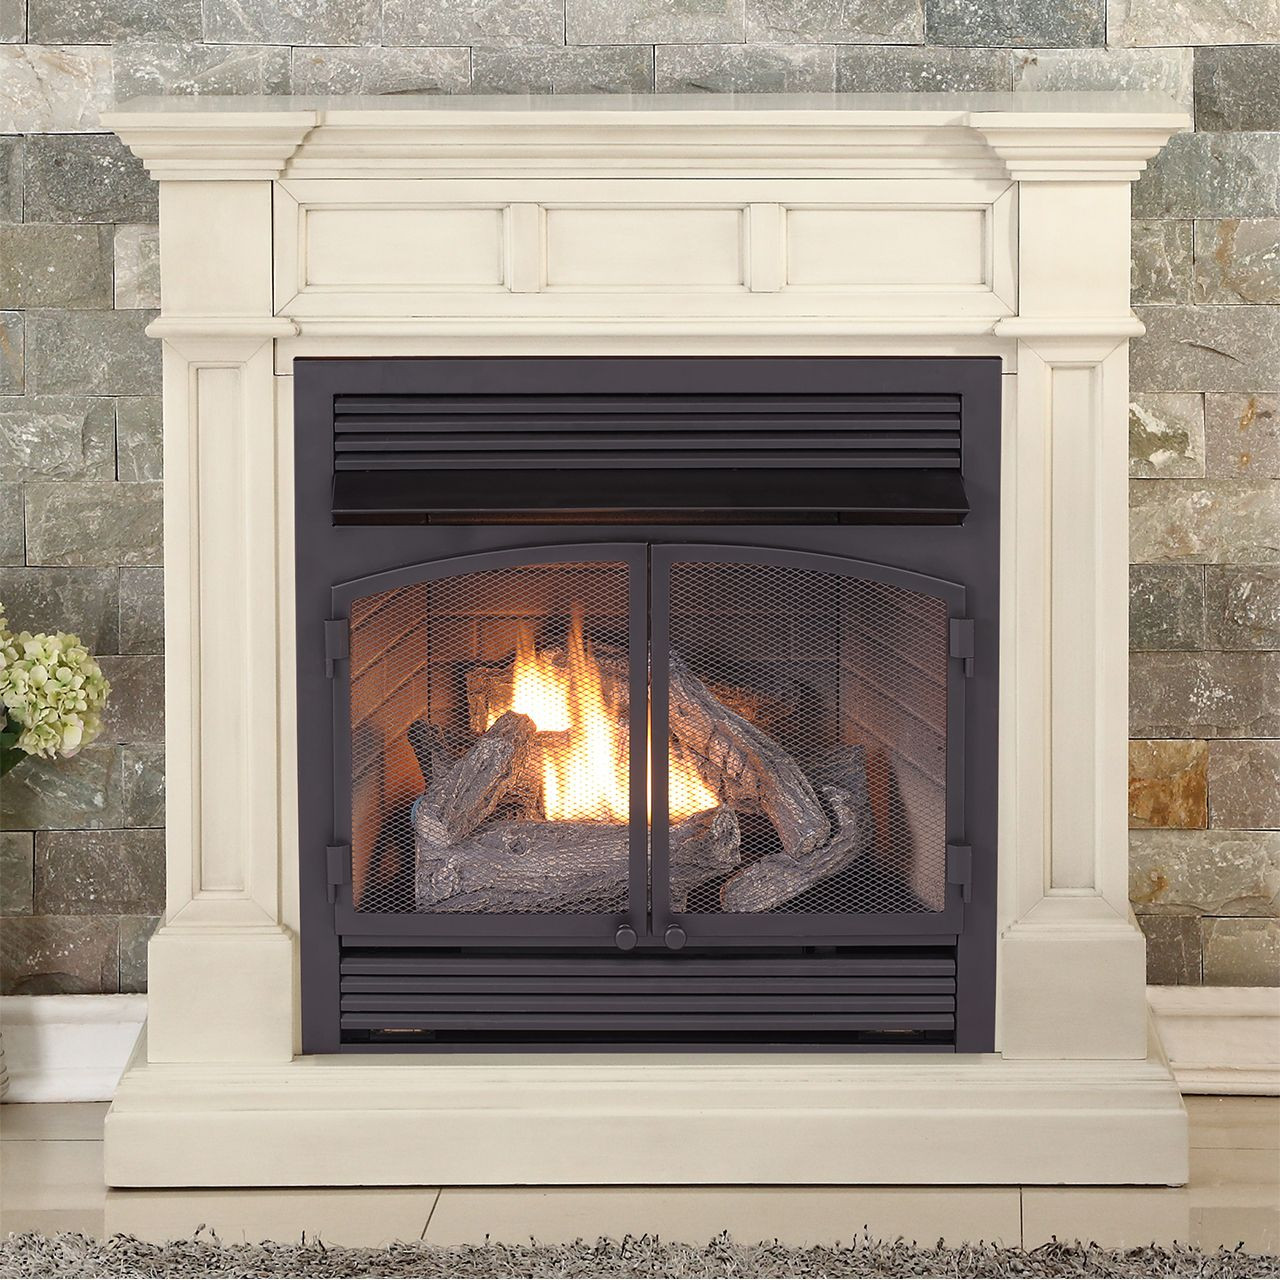 ventless gas fireplaces fireplace inserts factory buys direct rh factorybuysdirect com ventless natural gas fireplace logs how do ventless natural gas fireplaces work